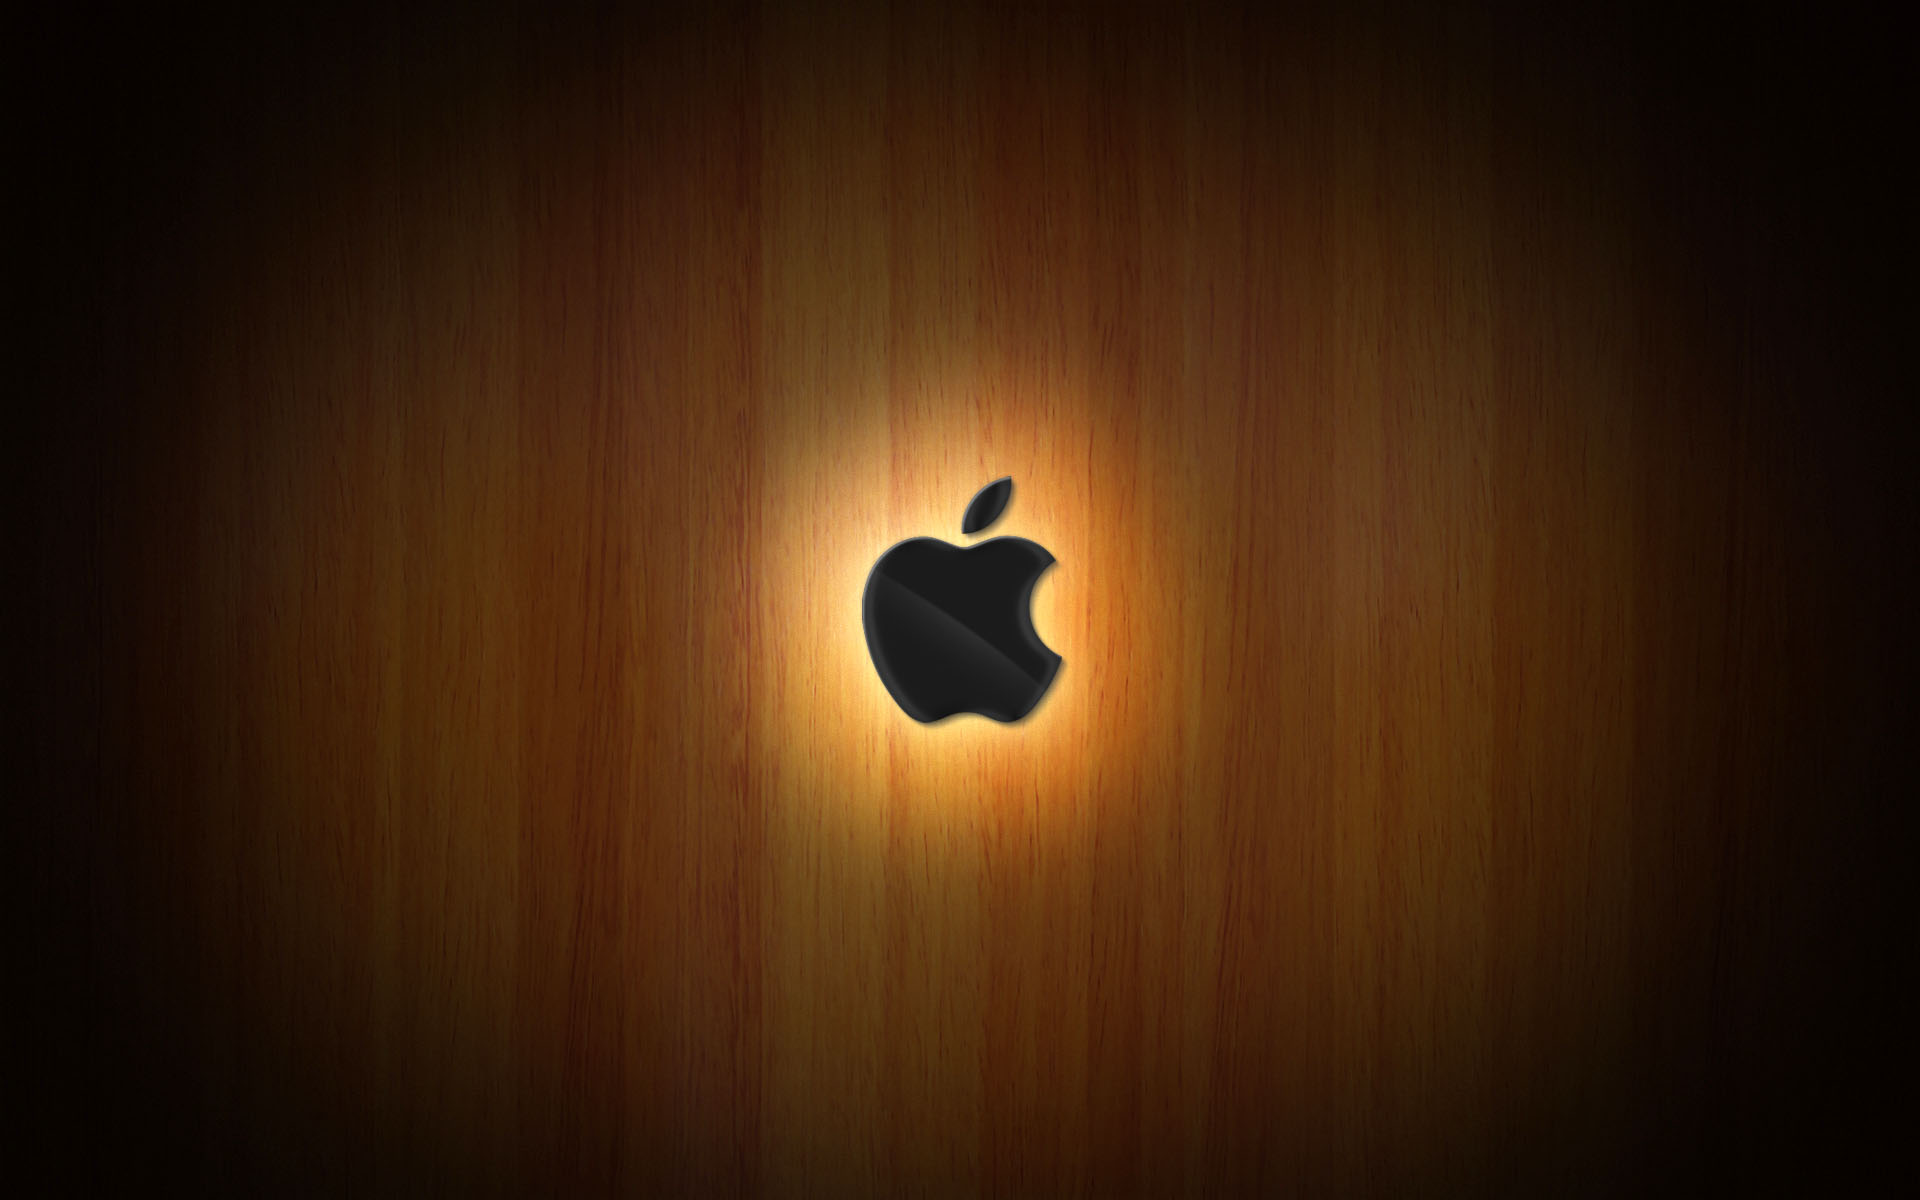 Wooden Glow of Apple